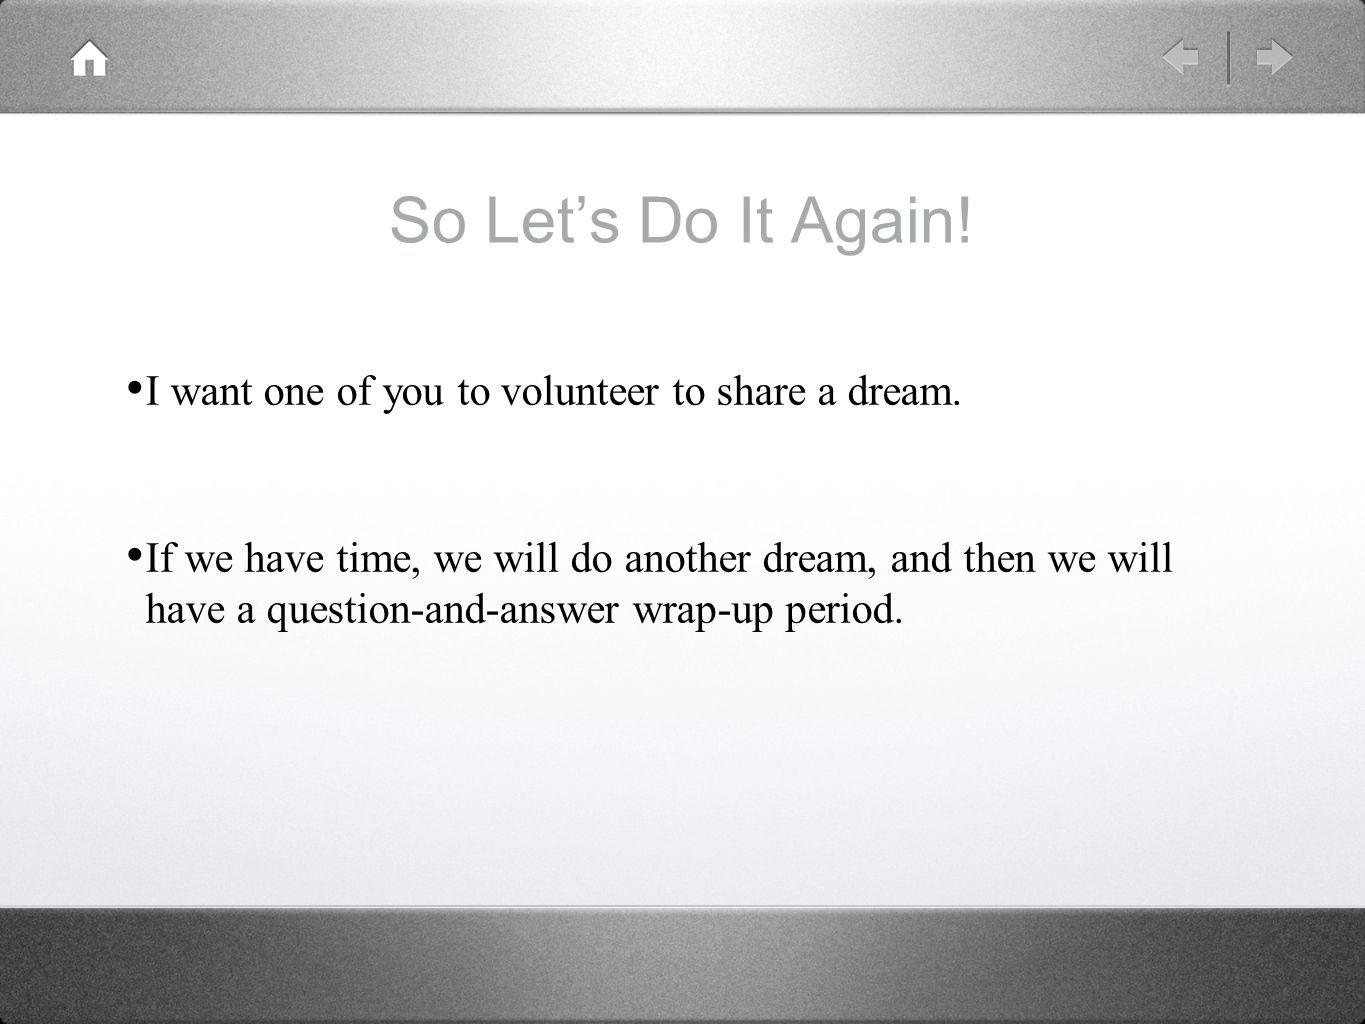 So Let's Do It Again. I want one of you to volunteer to share a dream.